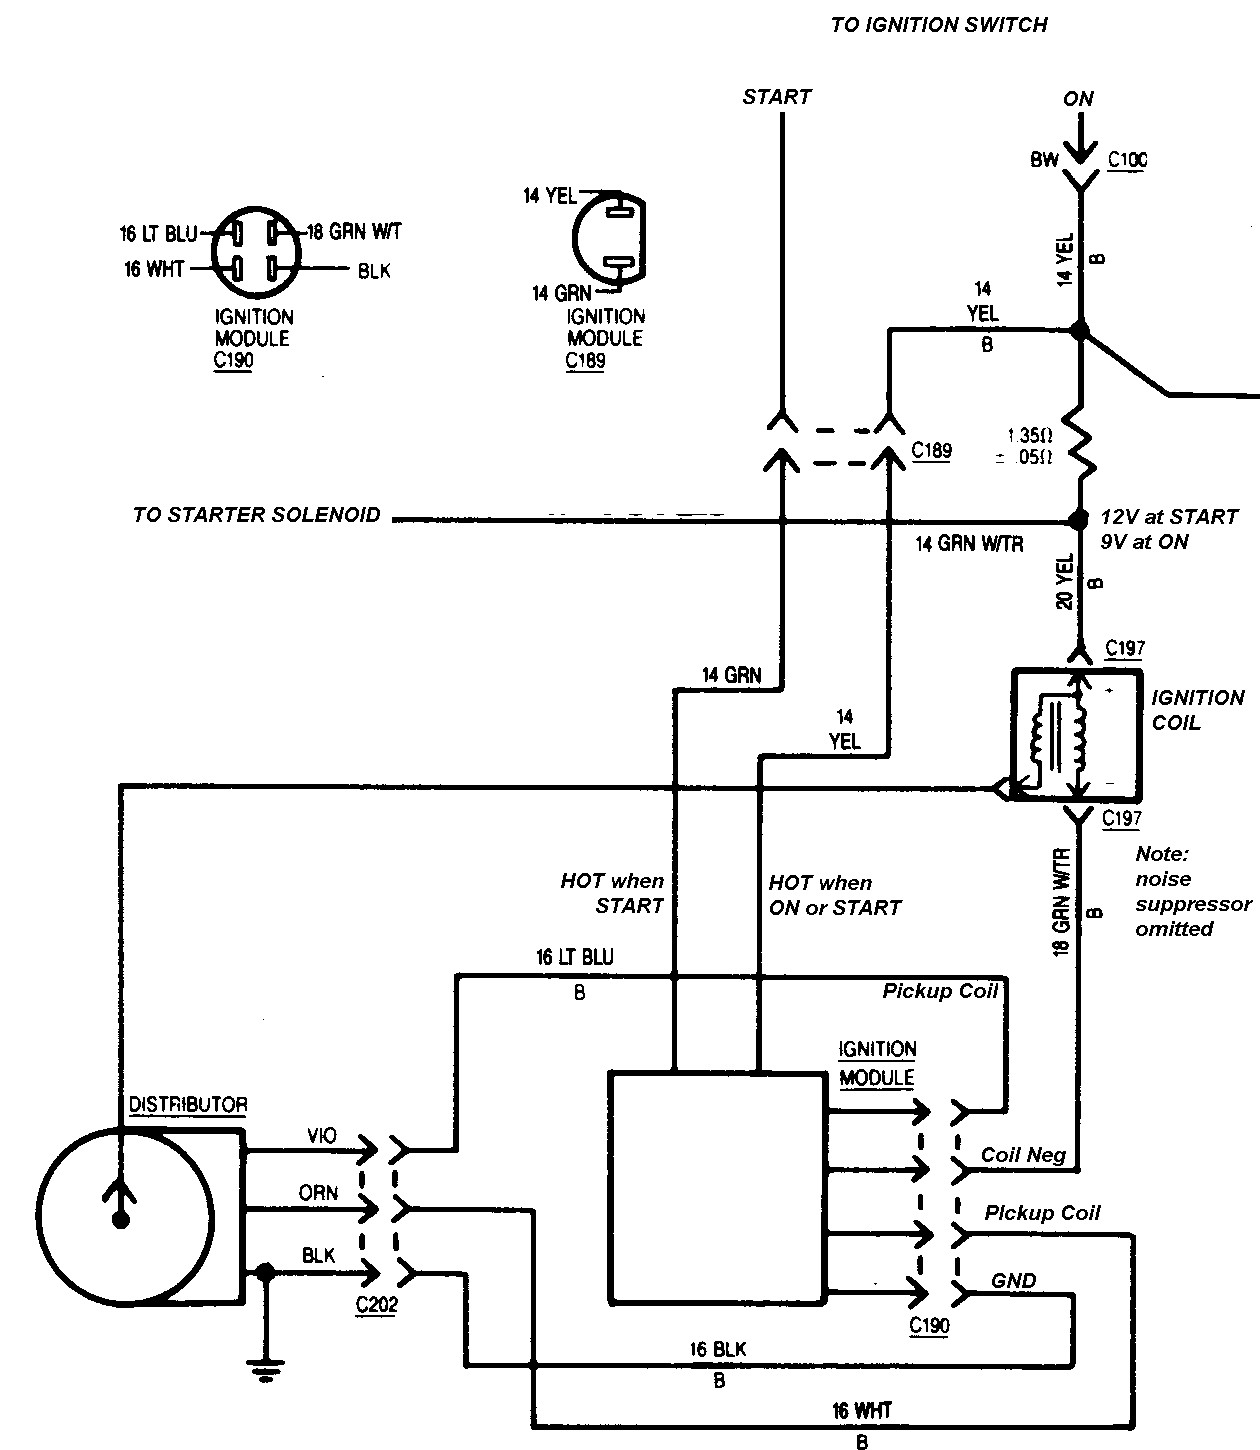 Dyna Ignition Wiring Diagram Chevrolet Great Installation Of 1993 Fxdwg Electronic 2 9 Detailed Rh 7 6 Ocotillo Paysage Com